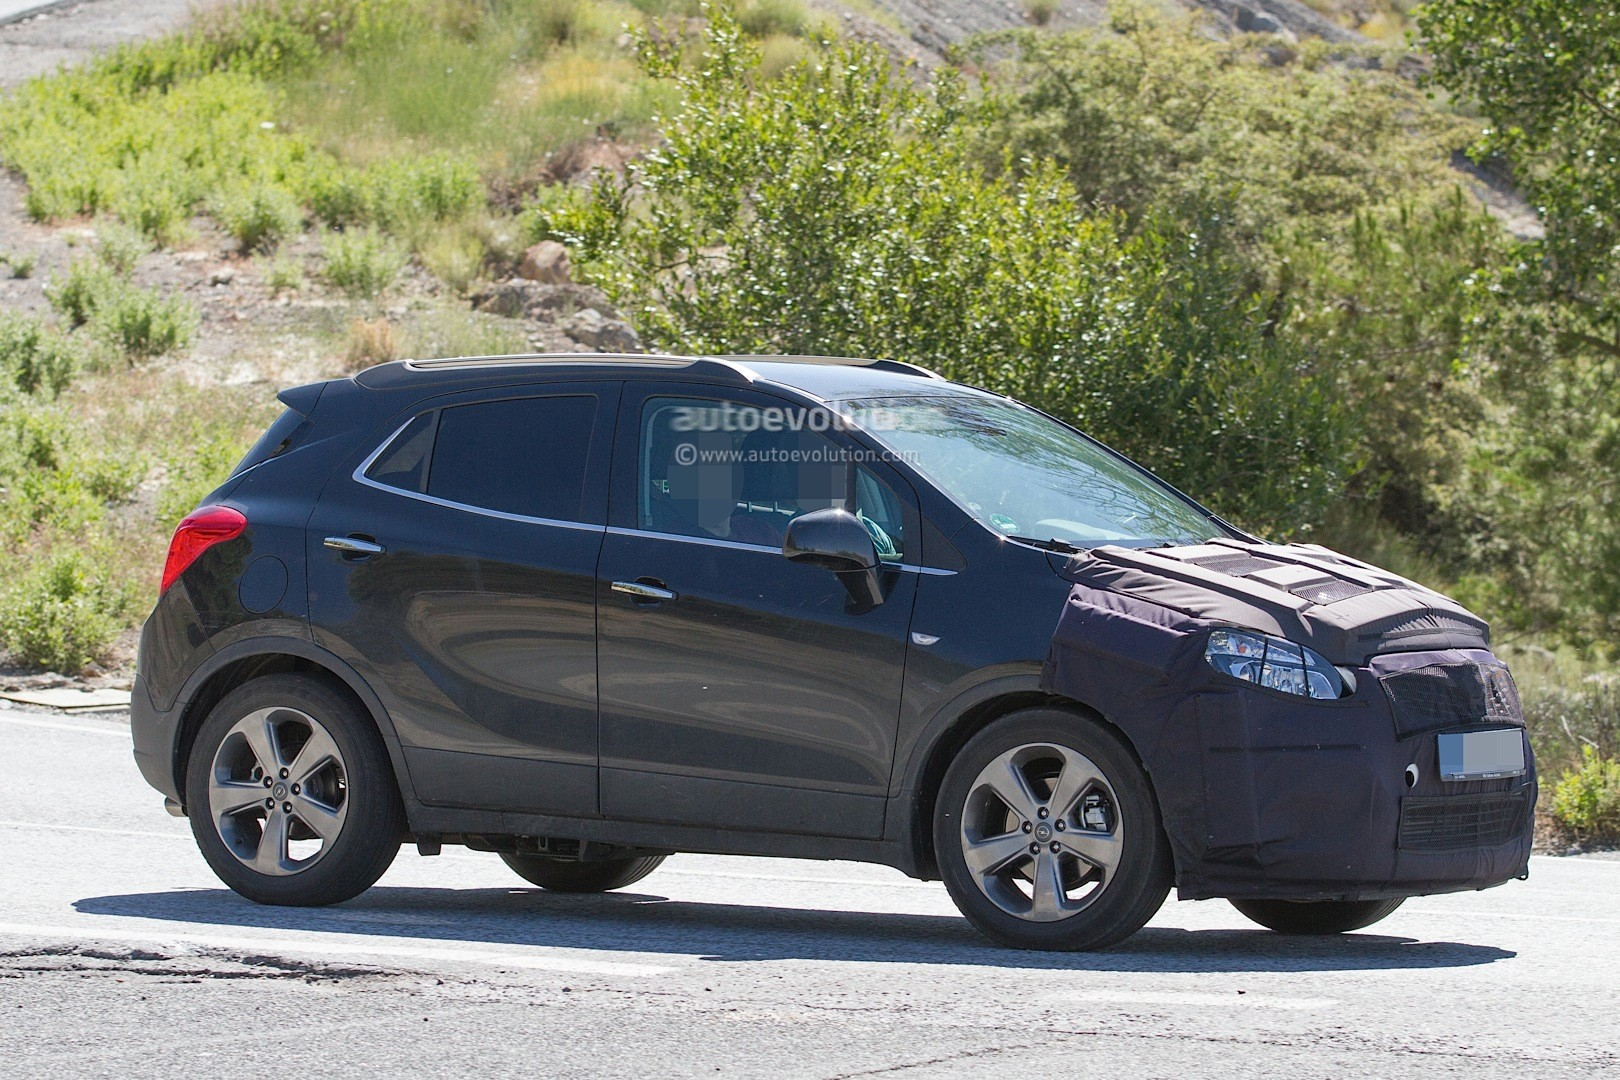 Spyshots: 2016 Opel Mokka Facelift Getting Euro 6 Engines from Astra K ...: www.autoevolution.com/news/spyshots-2016-opel-mokka-facelift...